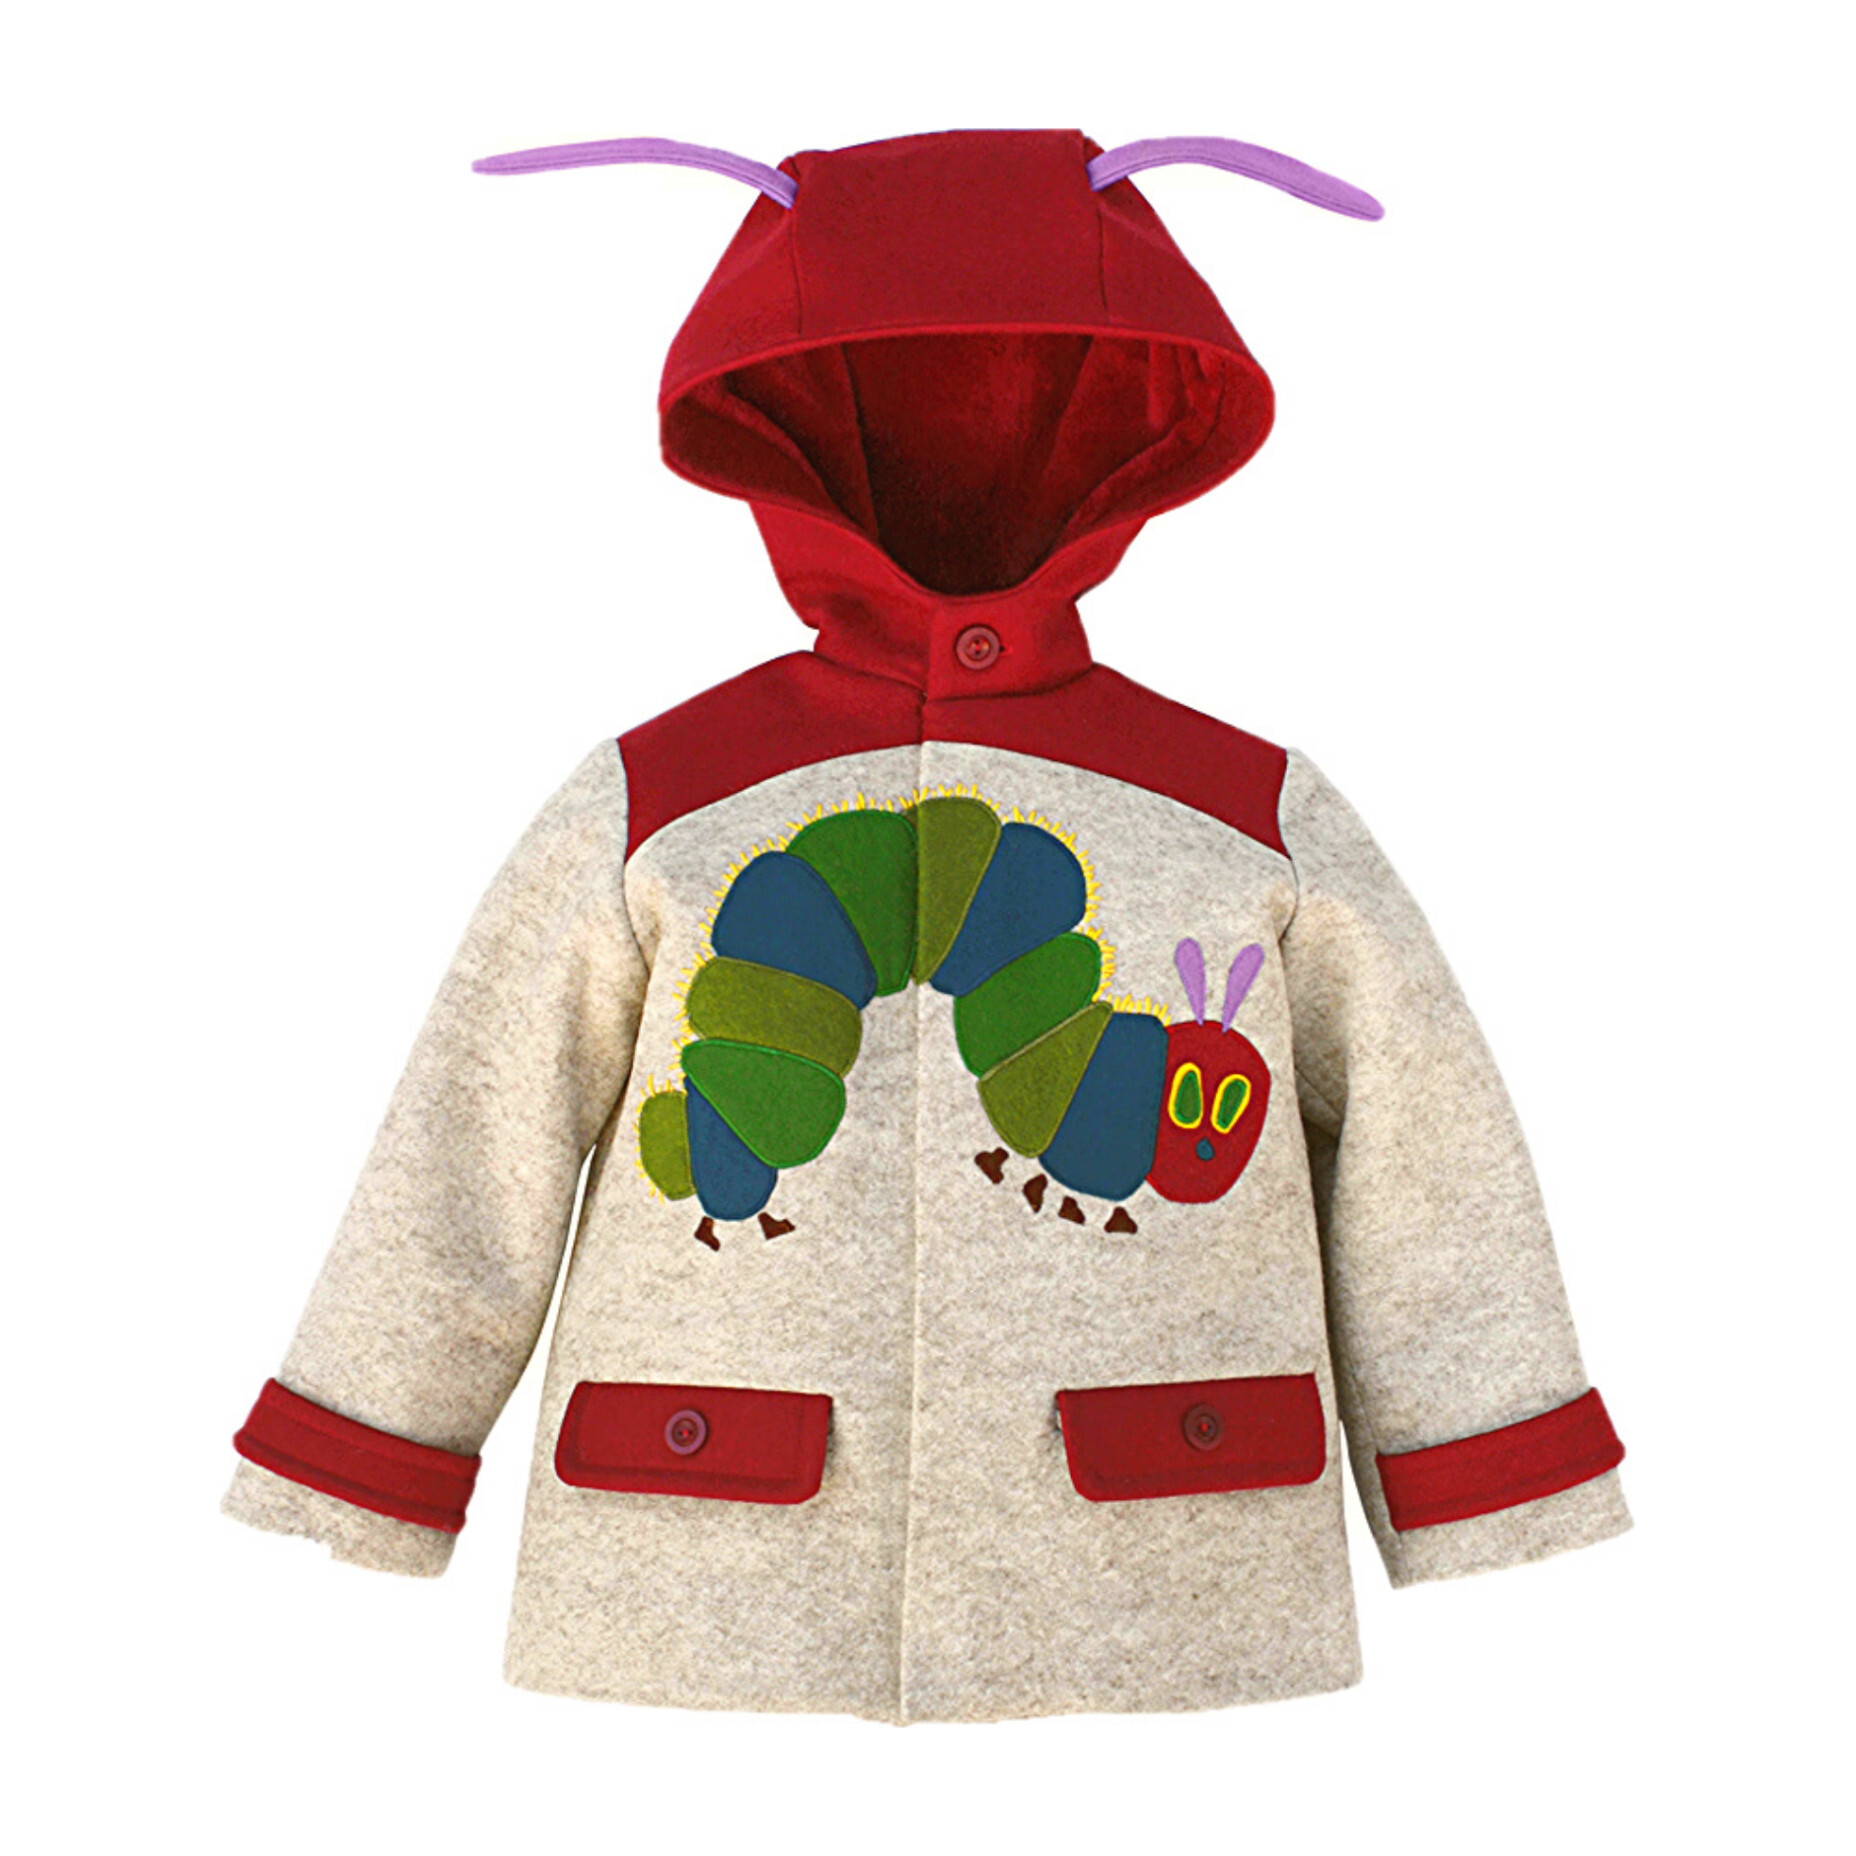 The Very Hungry Caterpillar™ Coat, Heather Oatmeal